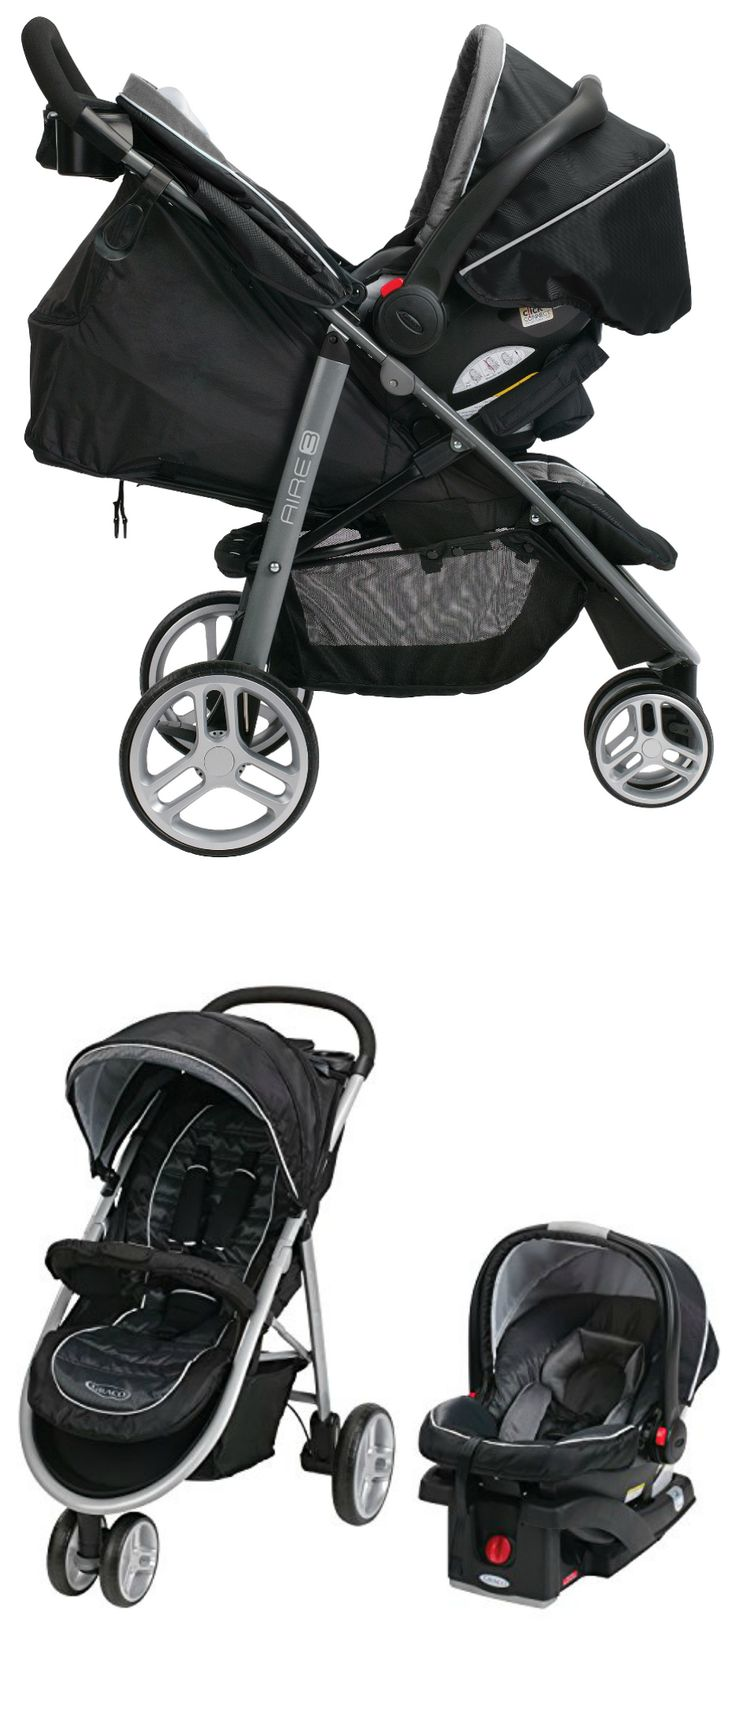 On our list of the top 8 best travel systems is the Graco Aire3 Click Connect. Why We Love It: Graco's Aire3 Click Connect Travel System comes with a stroller, infant car seat, and base. The stroller is sleek and lightweight weighing less than 22 pounds and has 3 wheels. It folds with one hand and locks automatically plus... Continue Reading